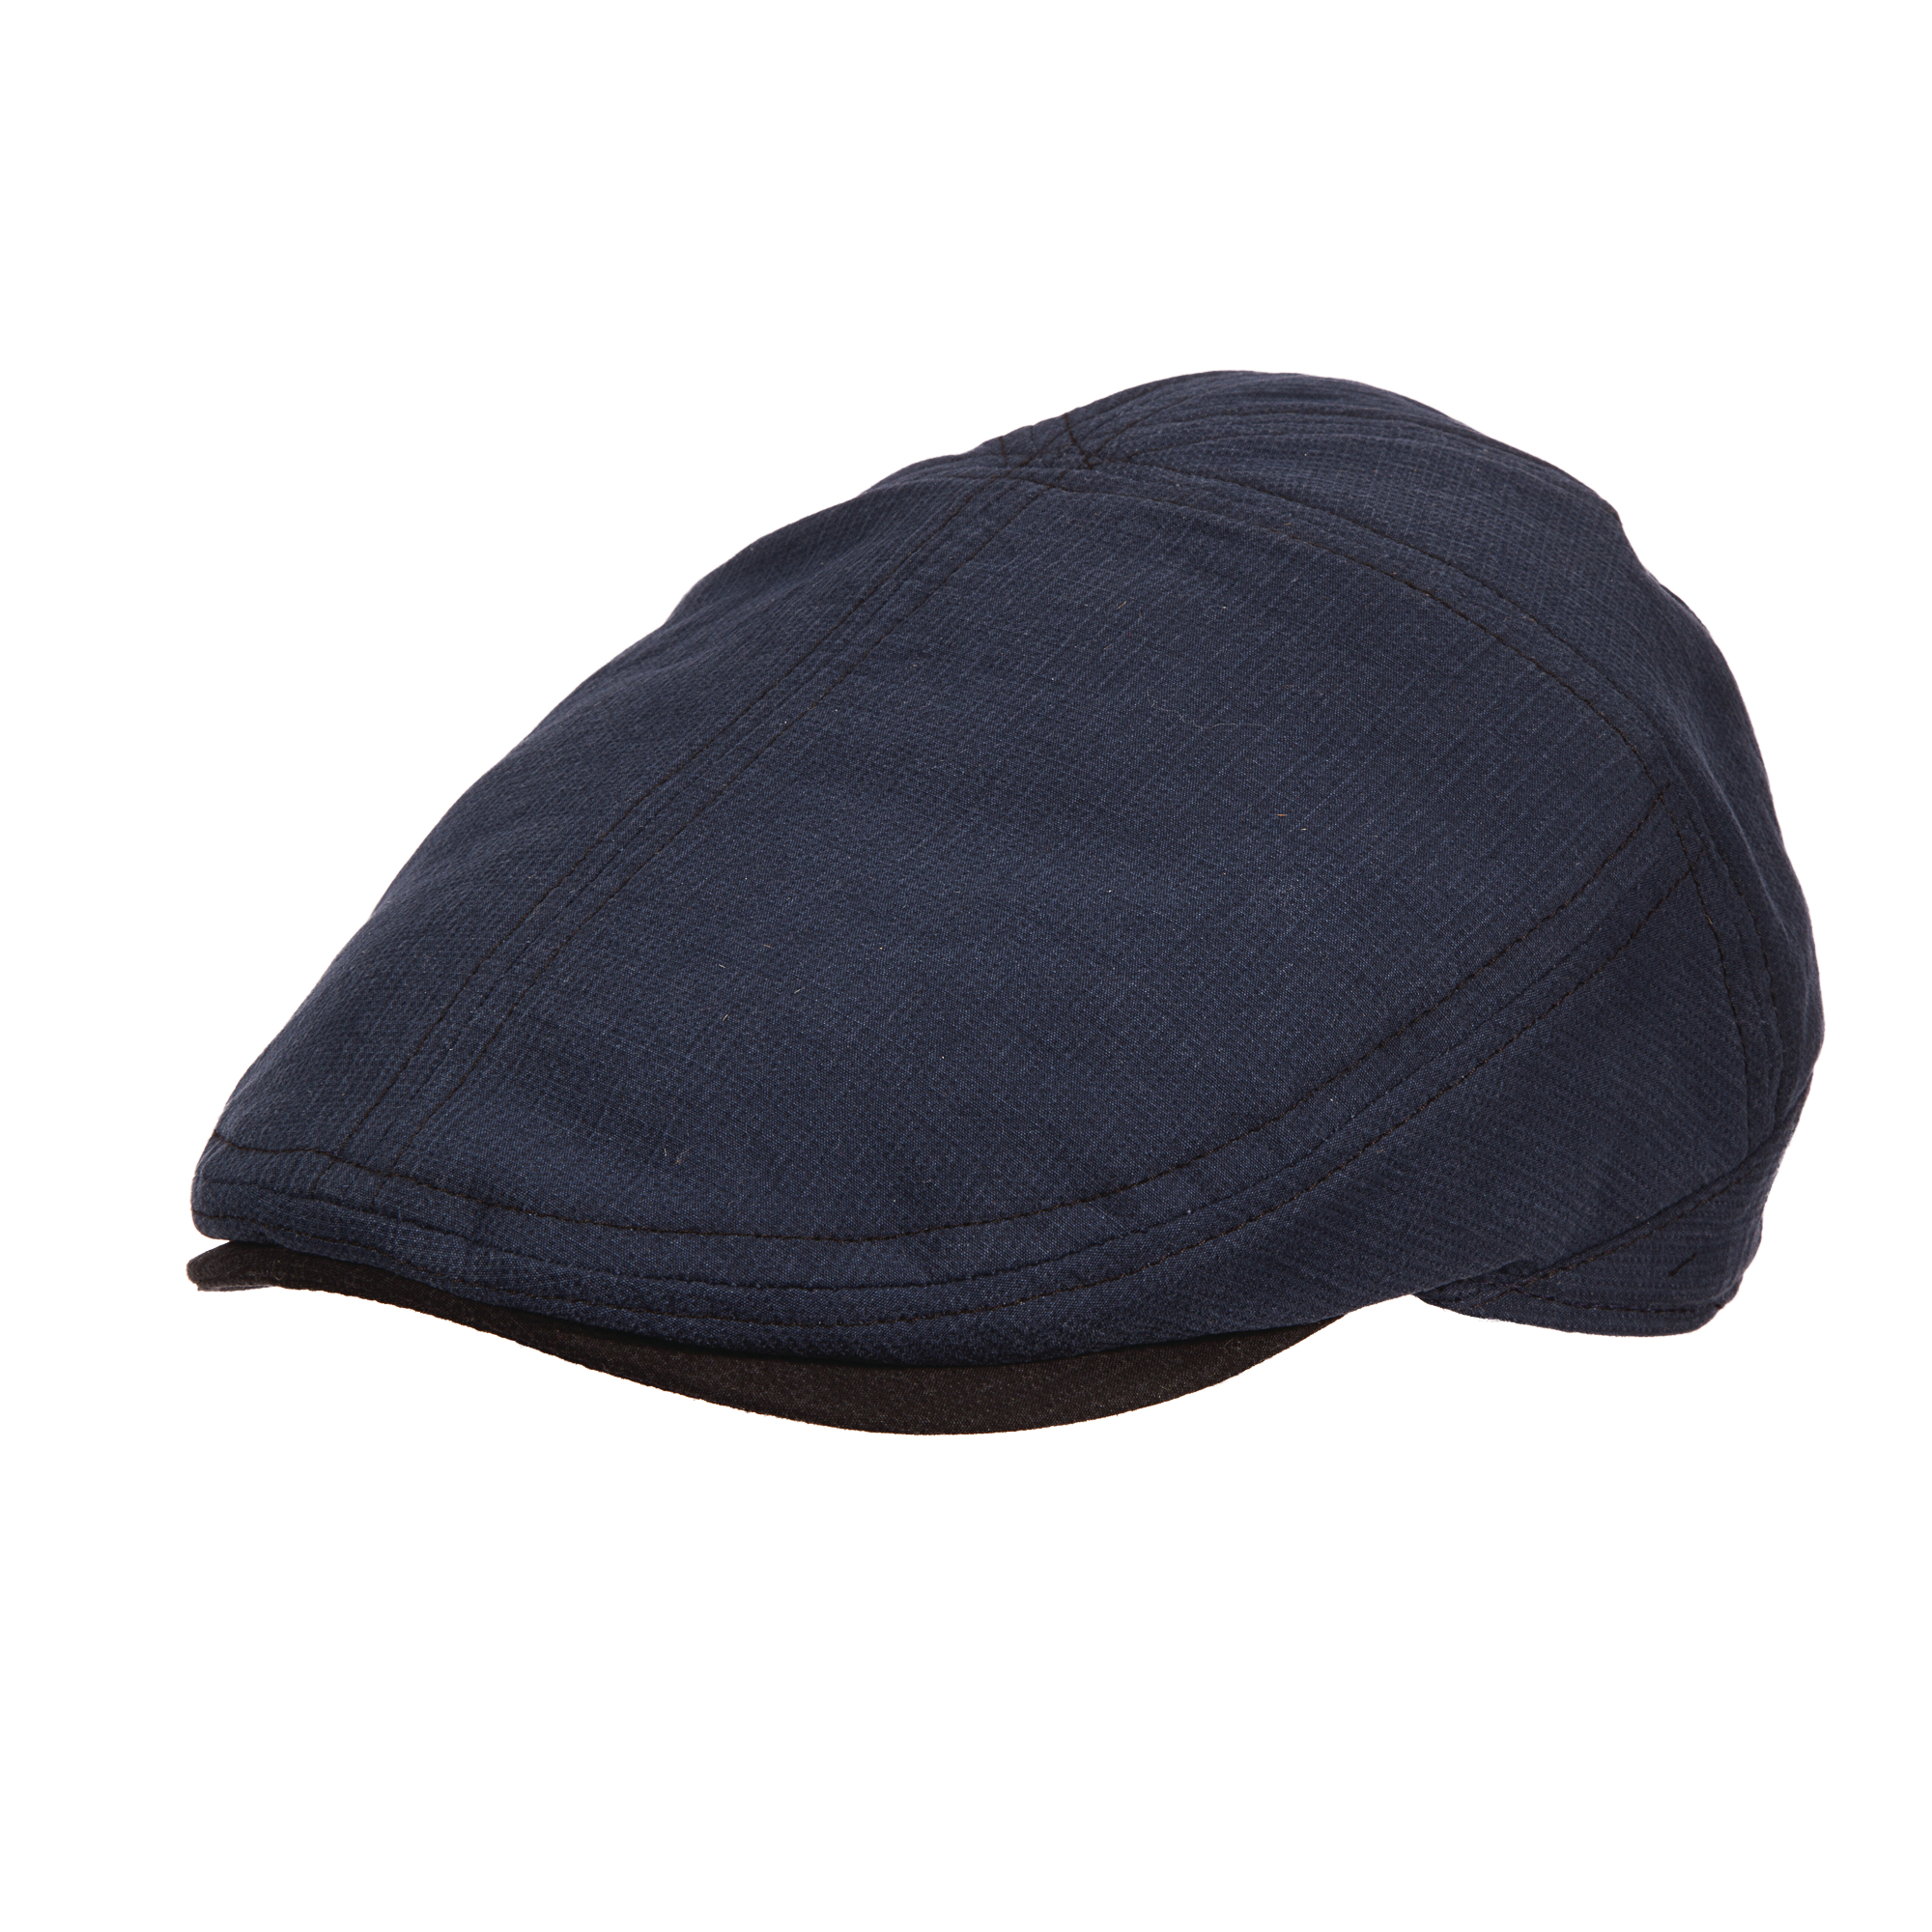 Stetson - Mens Washed Cotton Ivy Cap - Walmart.com 0d58a2f1a8e